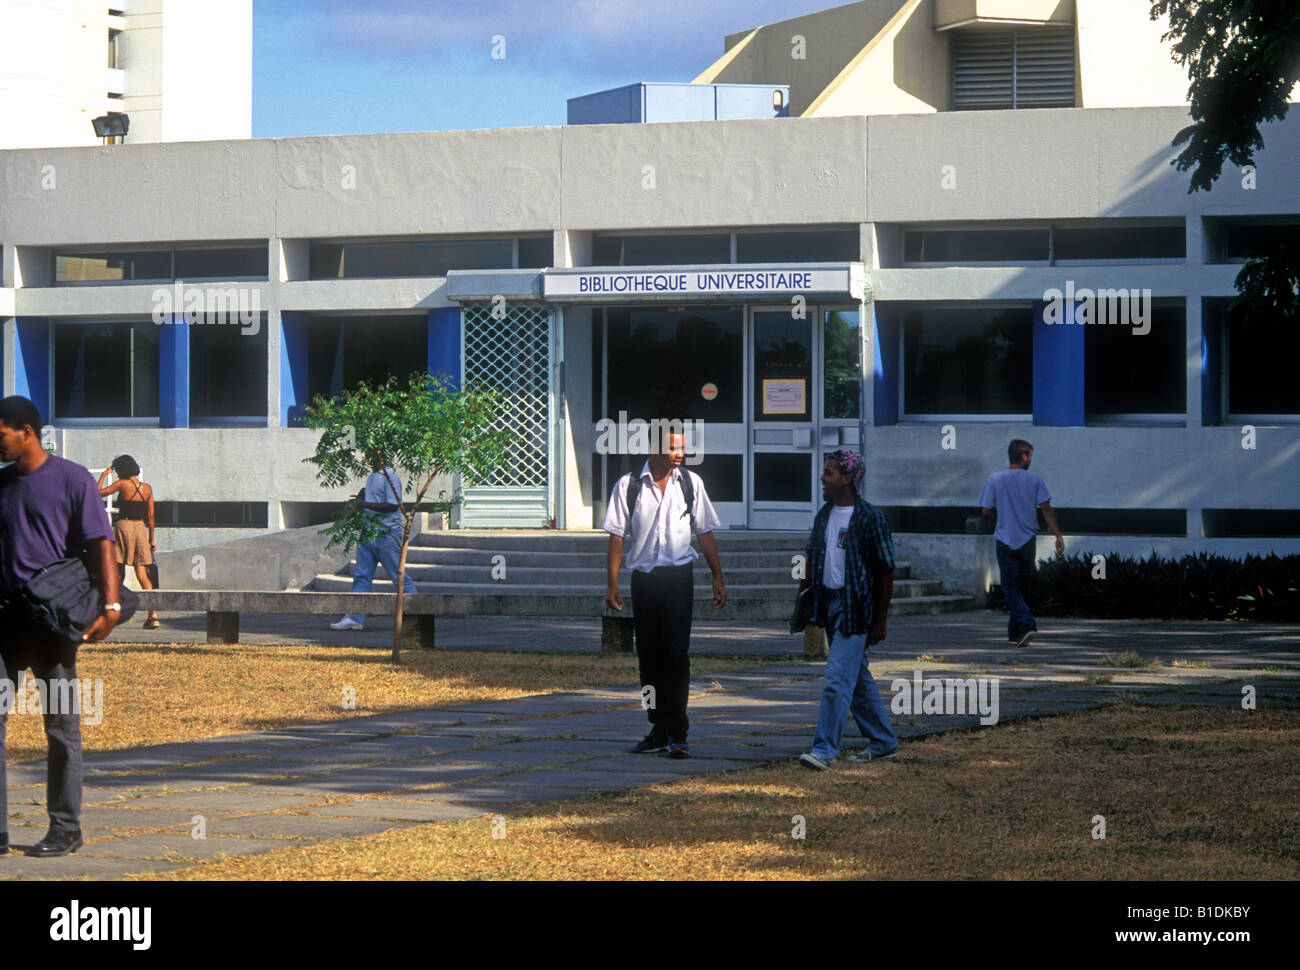 students, library, bibliotheque universitaire, Fouillole University, Universite de Fouillole, Pointe-a-Pitre, Guadeloupe - Stock Image